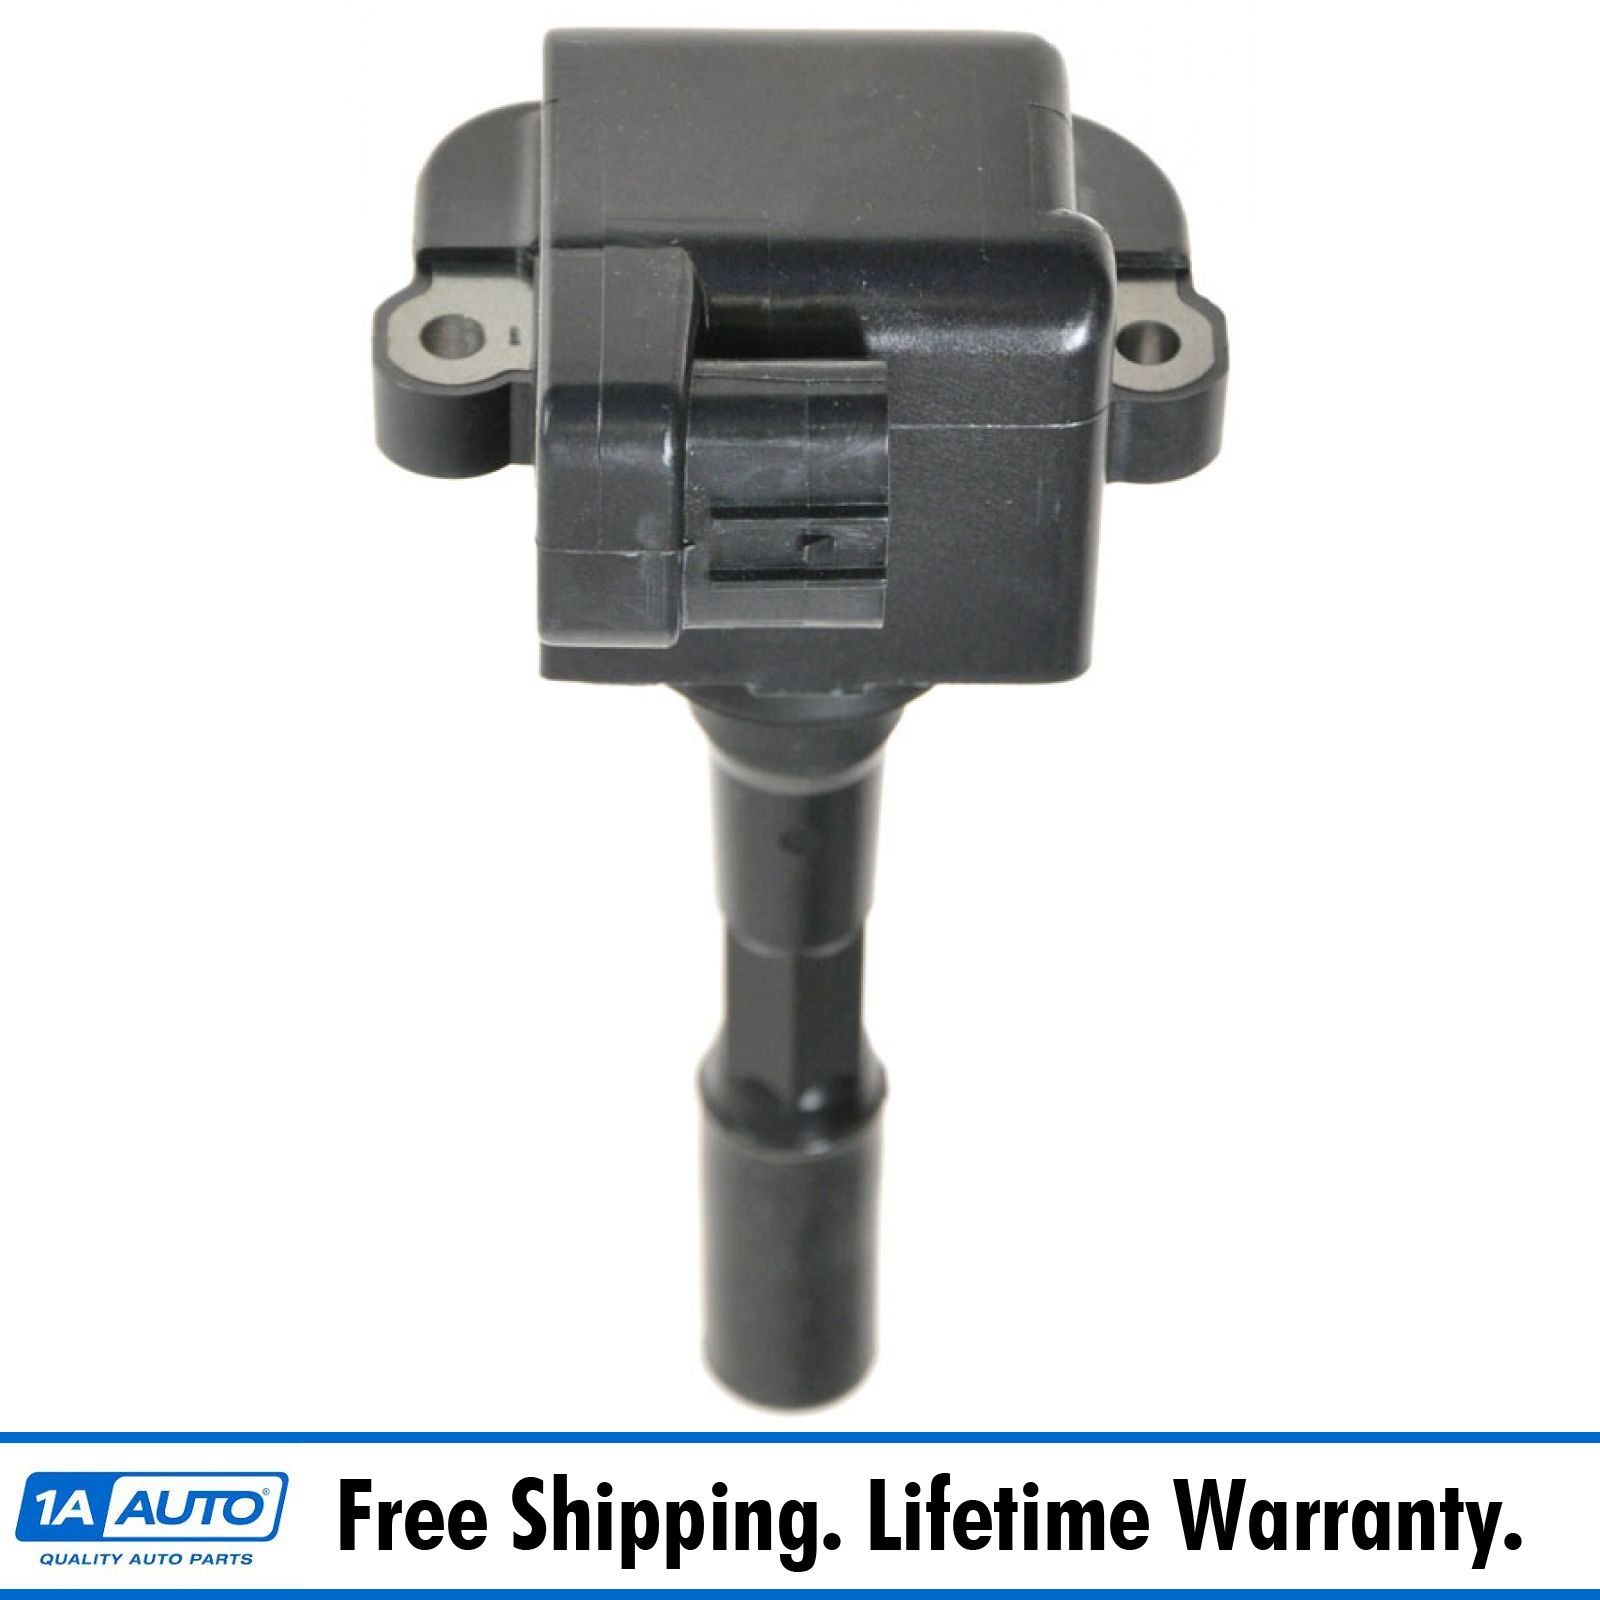 Ignition Coil NEW For Acura RL TL NSX